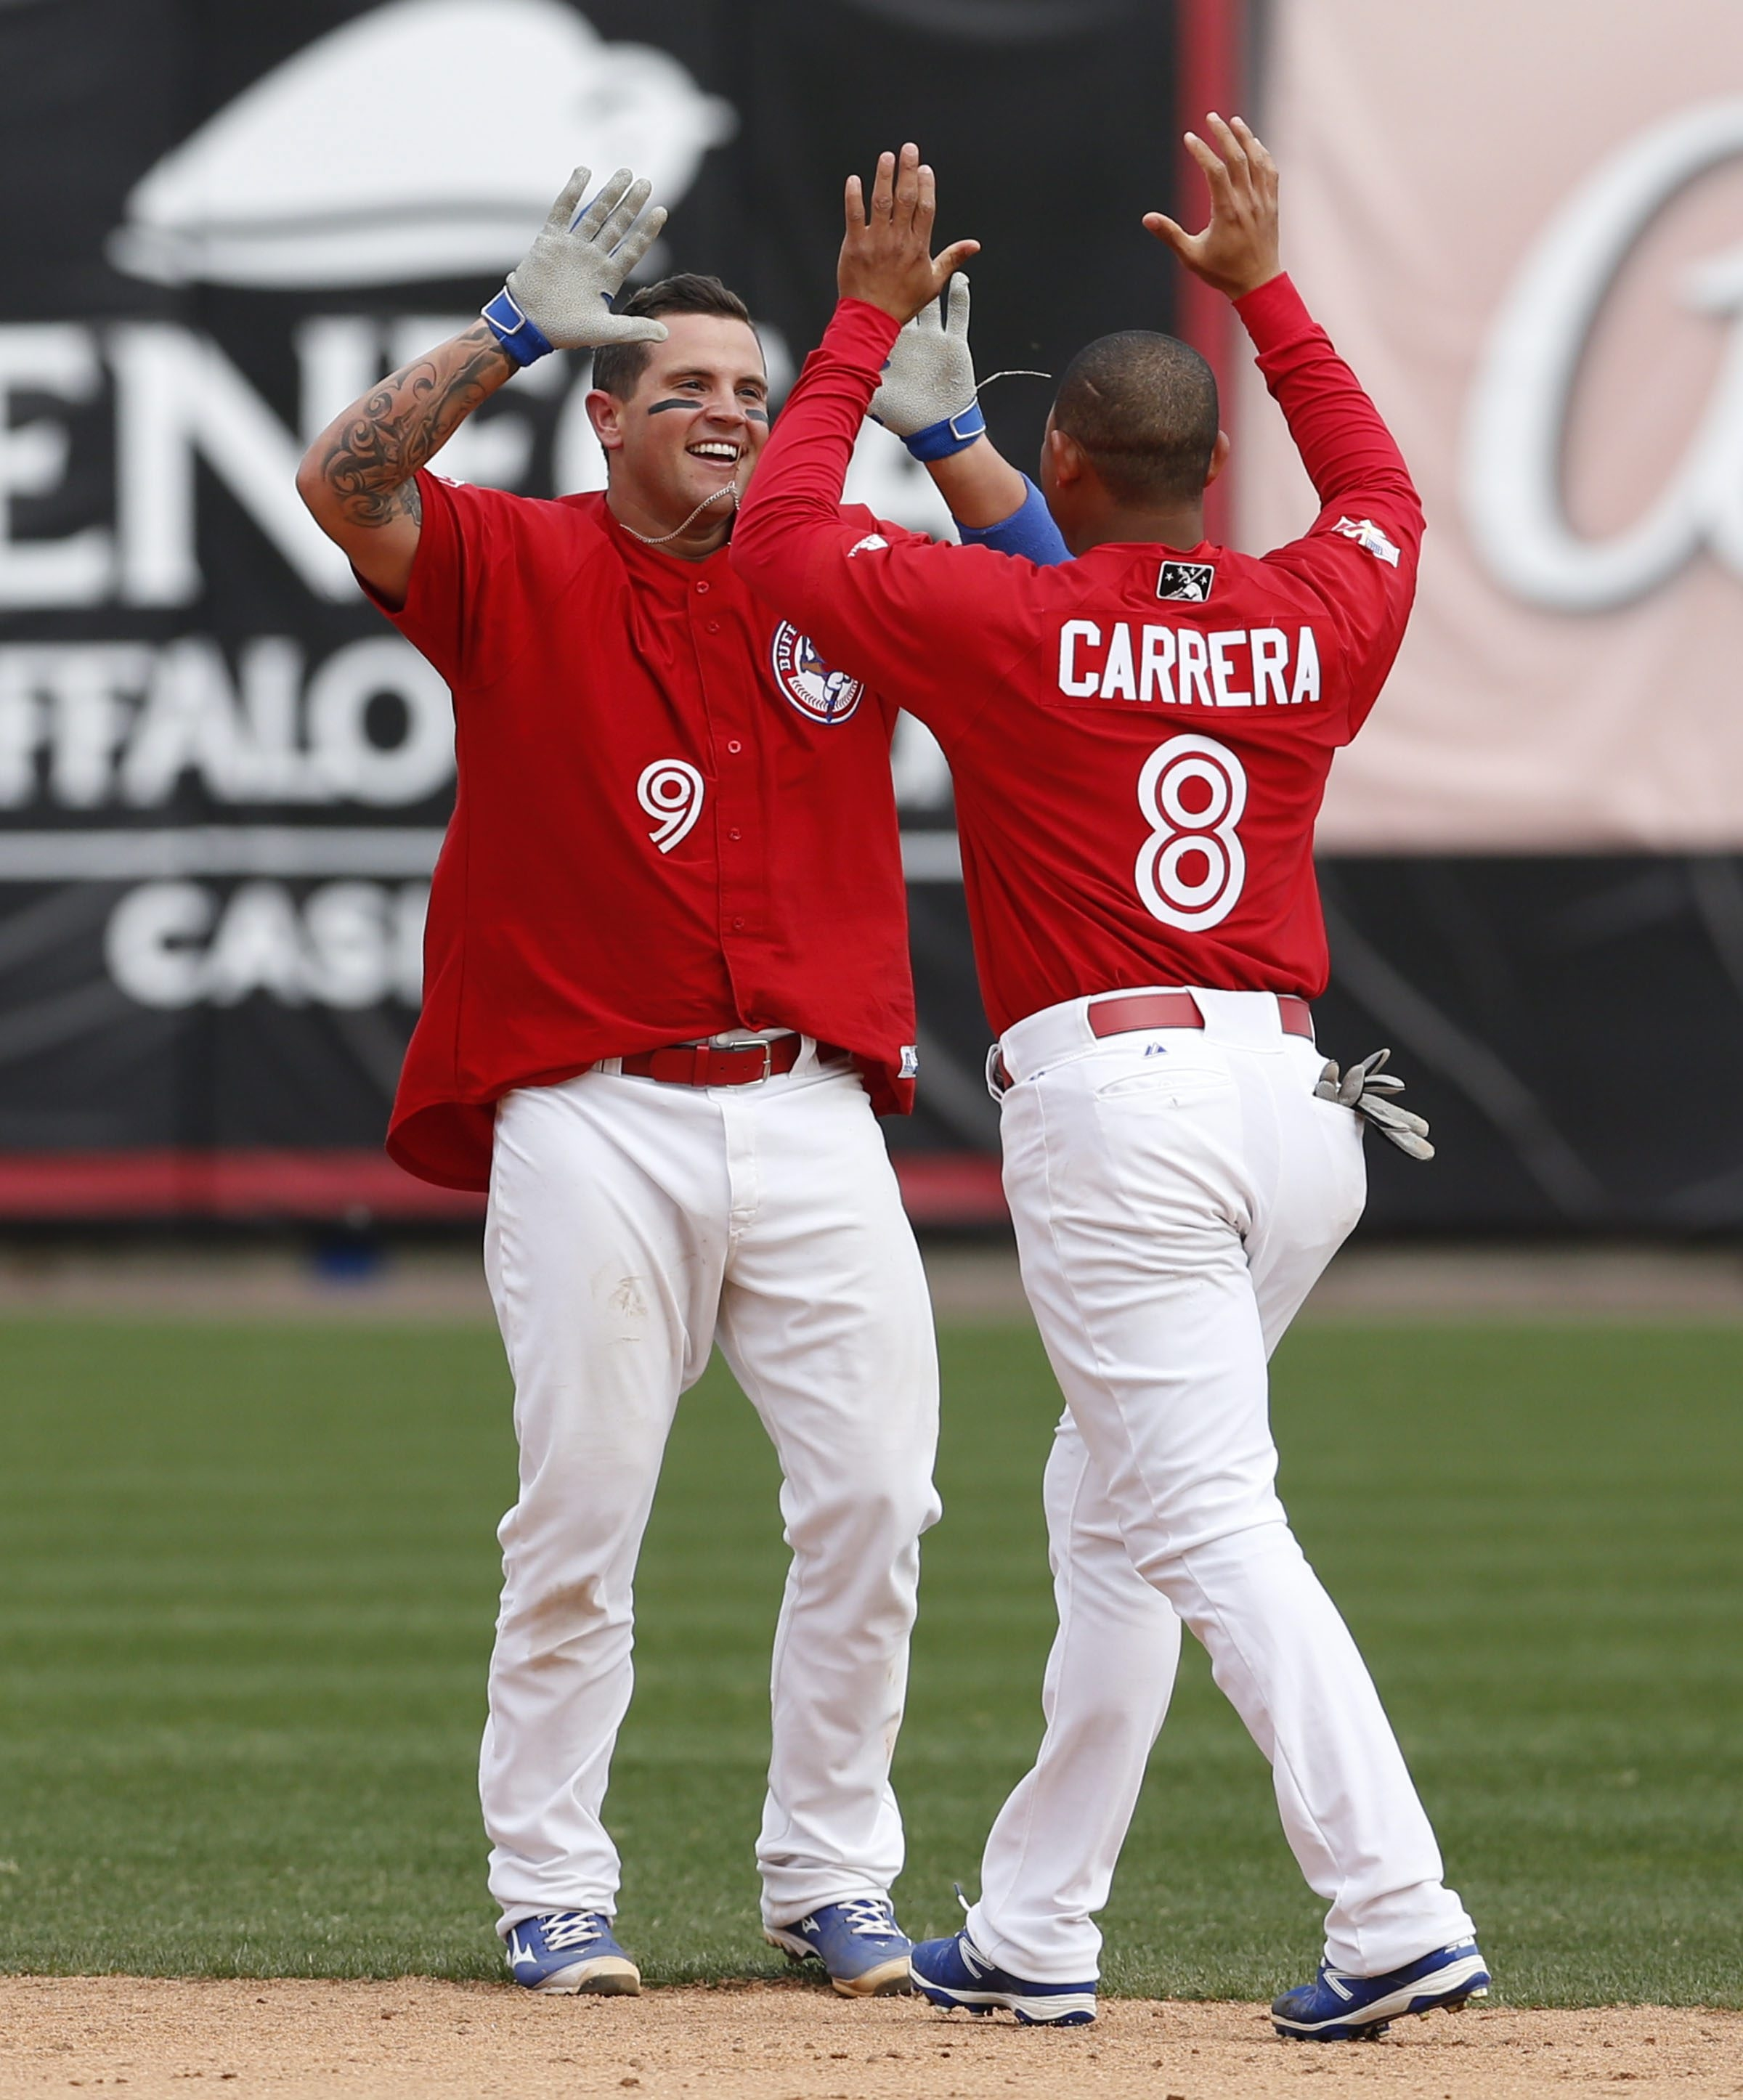 Ezequiel Carrera congratulates Sean Ochinko on his game-winner.